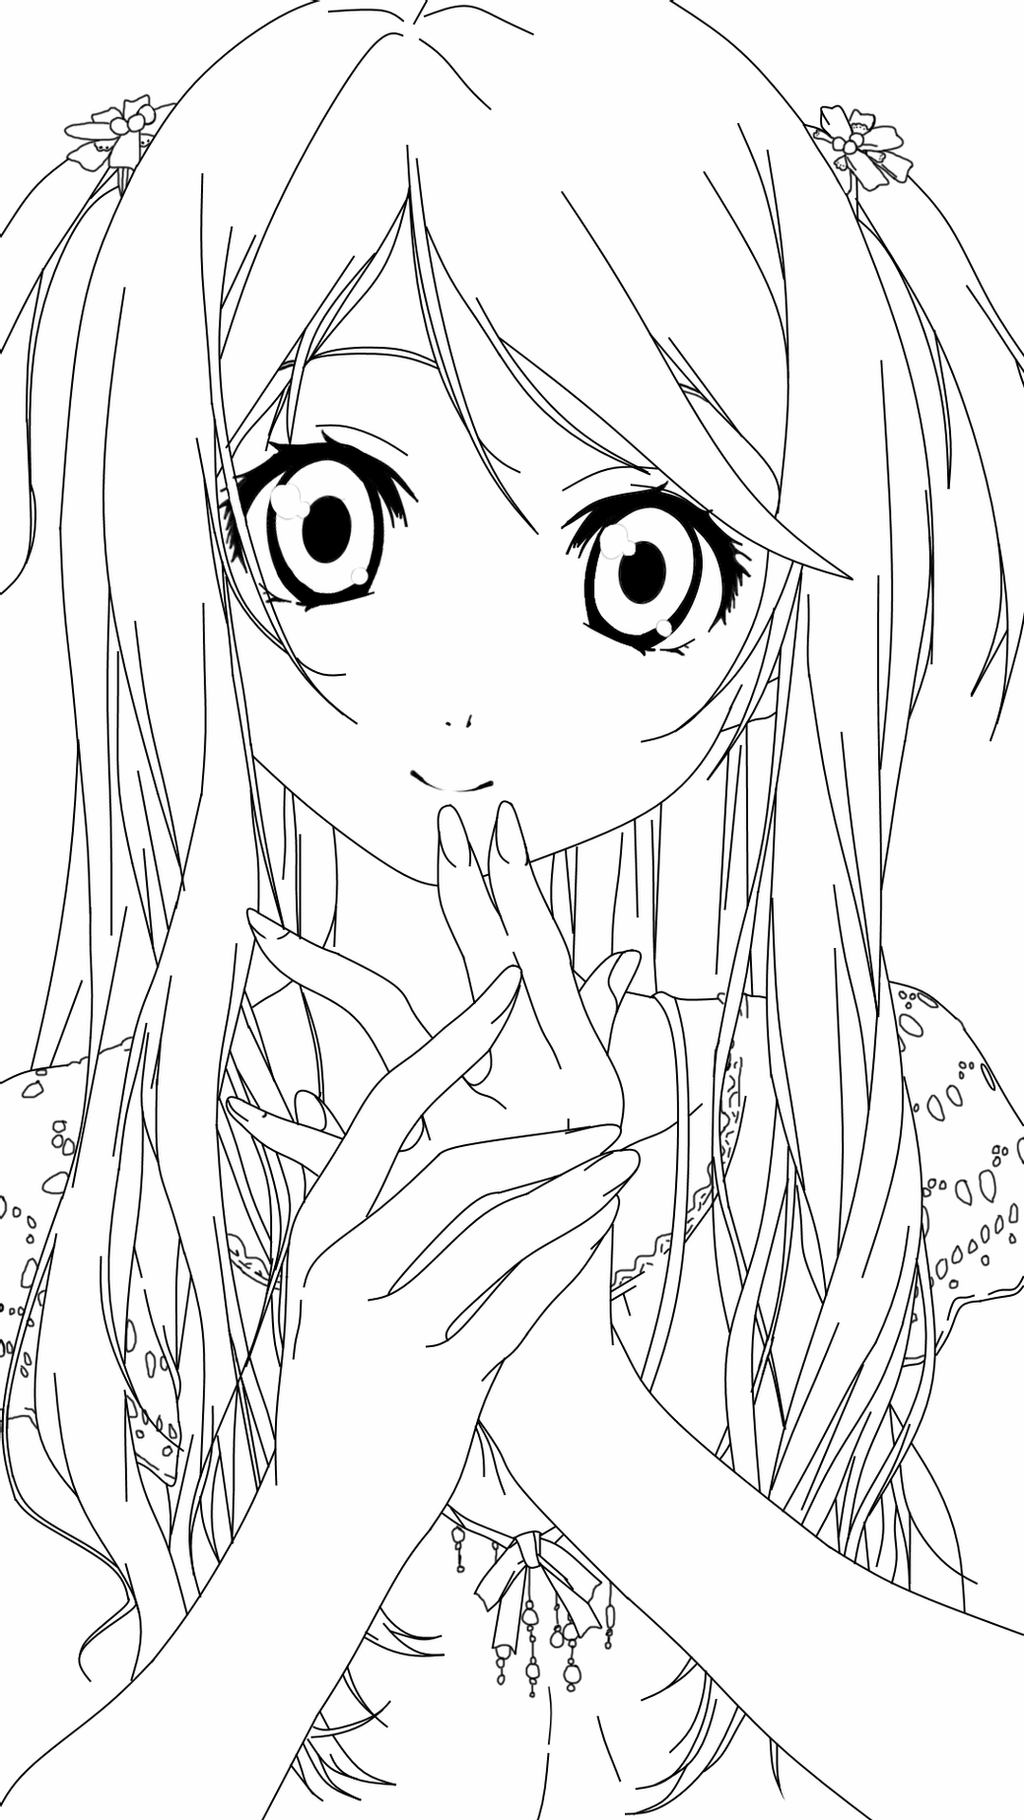 color anime anime manga coloring pages at getcoloringscom free anime color